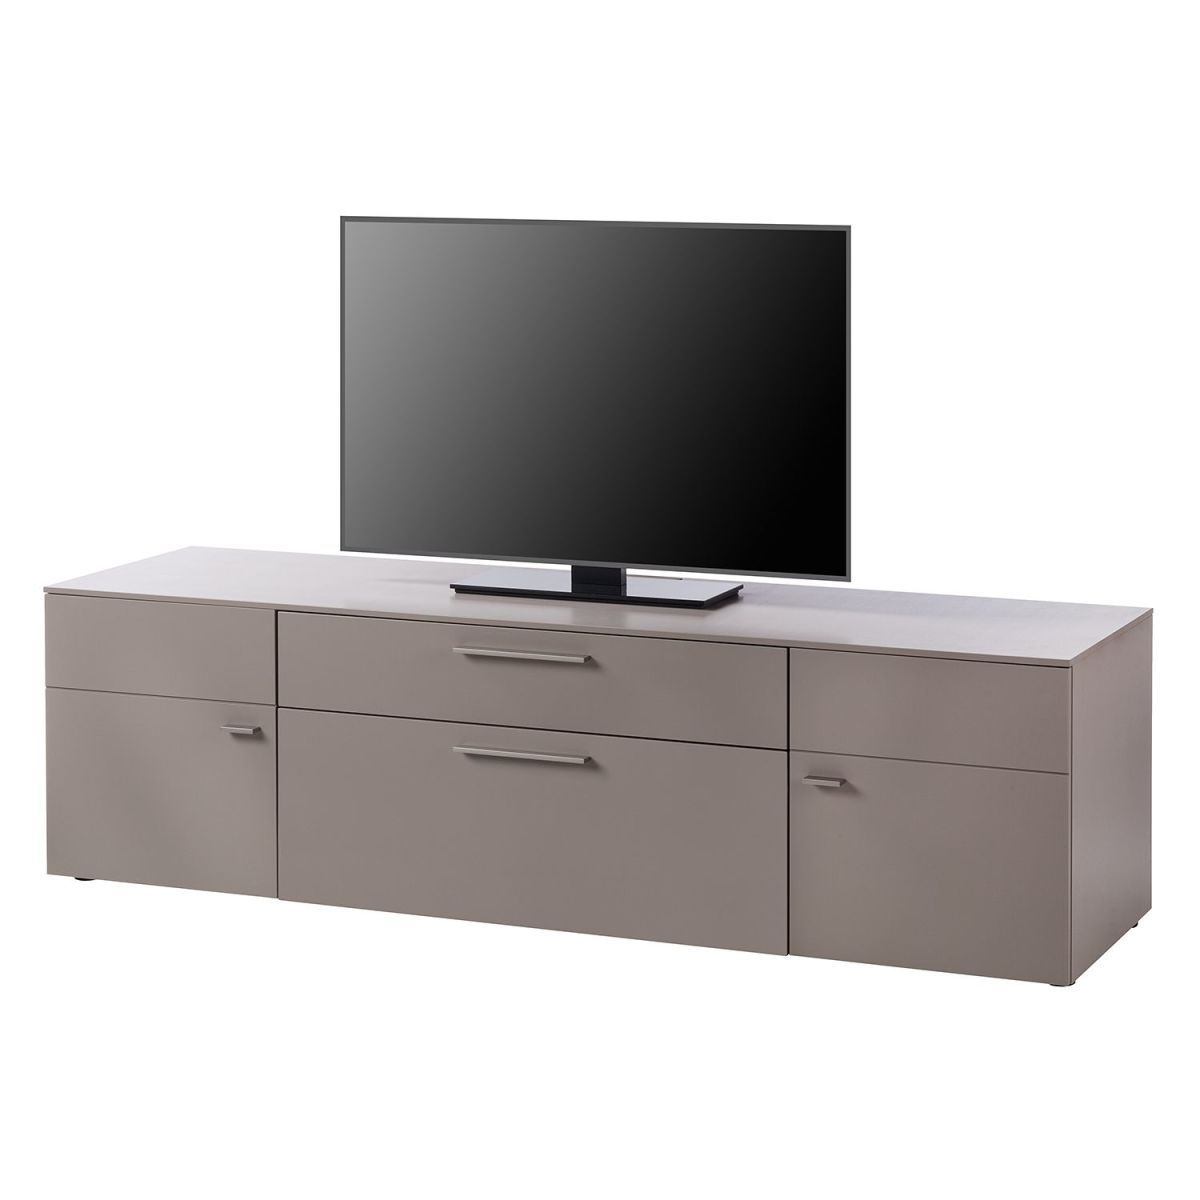 Tv Schrank Kernbuche Pin By Ladendirekt On Tv Hifi Möbel Flat Screen Television